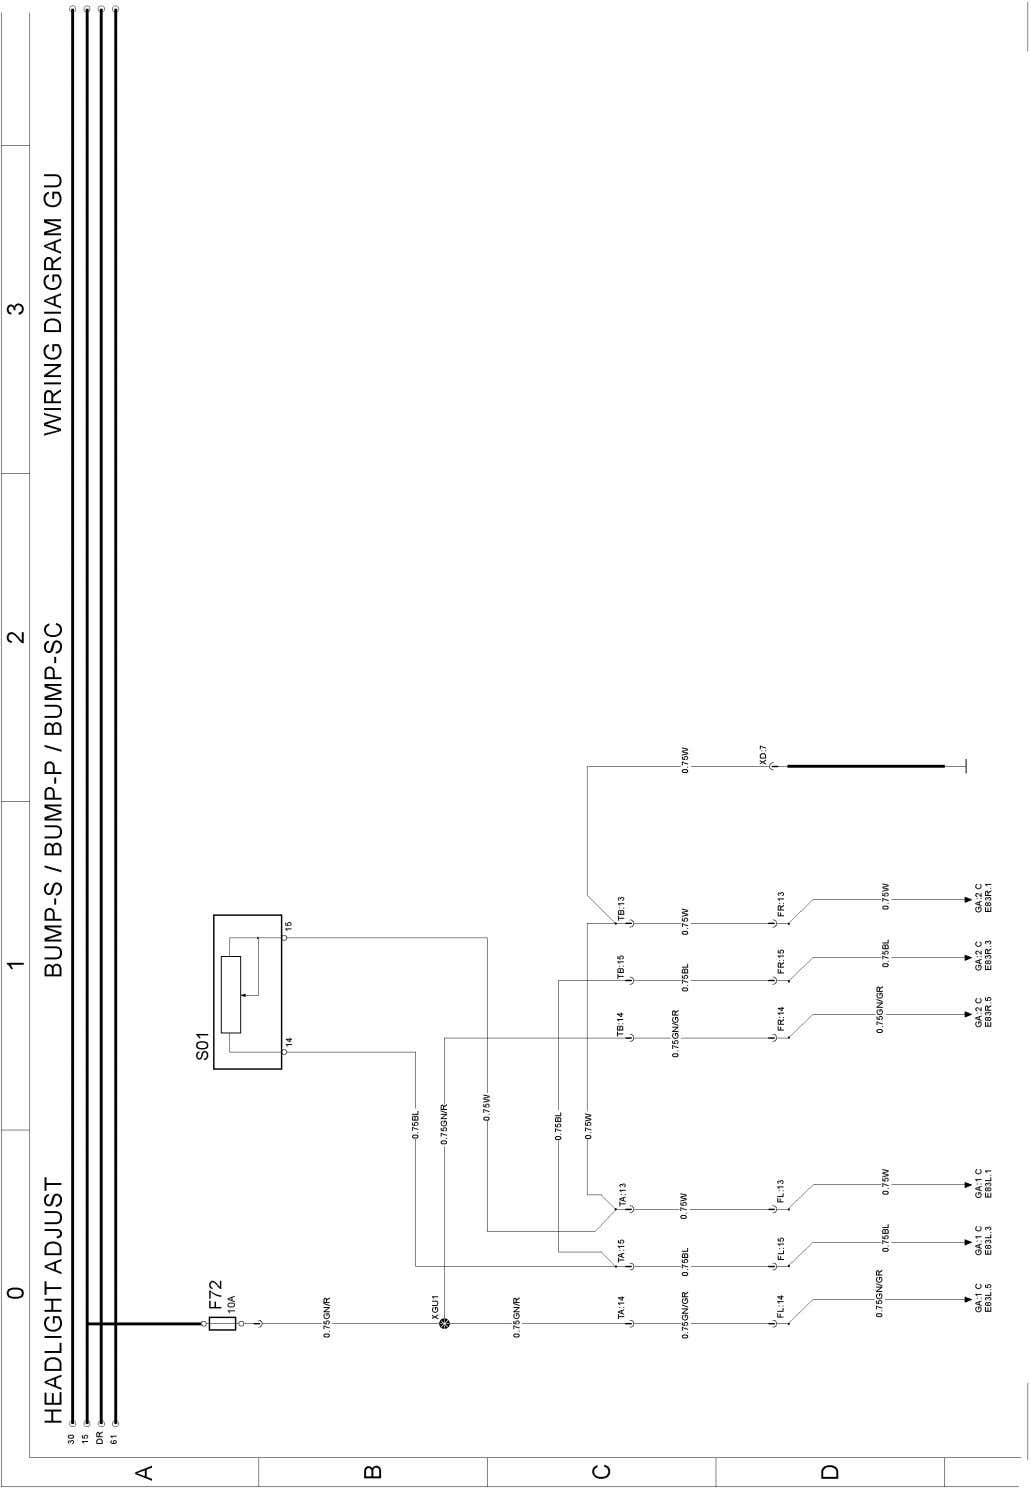 T3059898 Wiring diagram Page 75 (298)